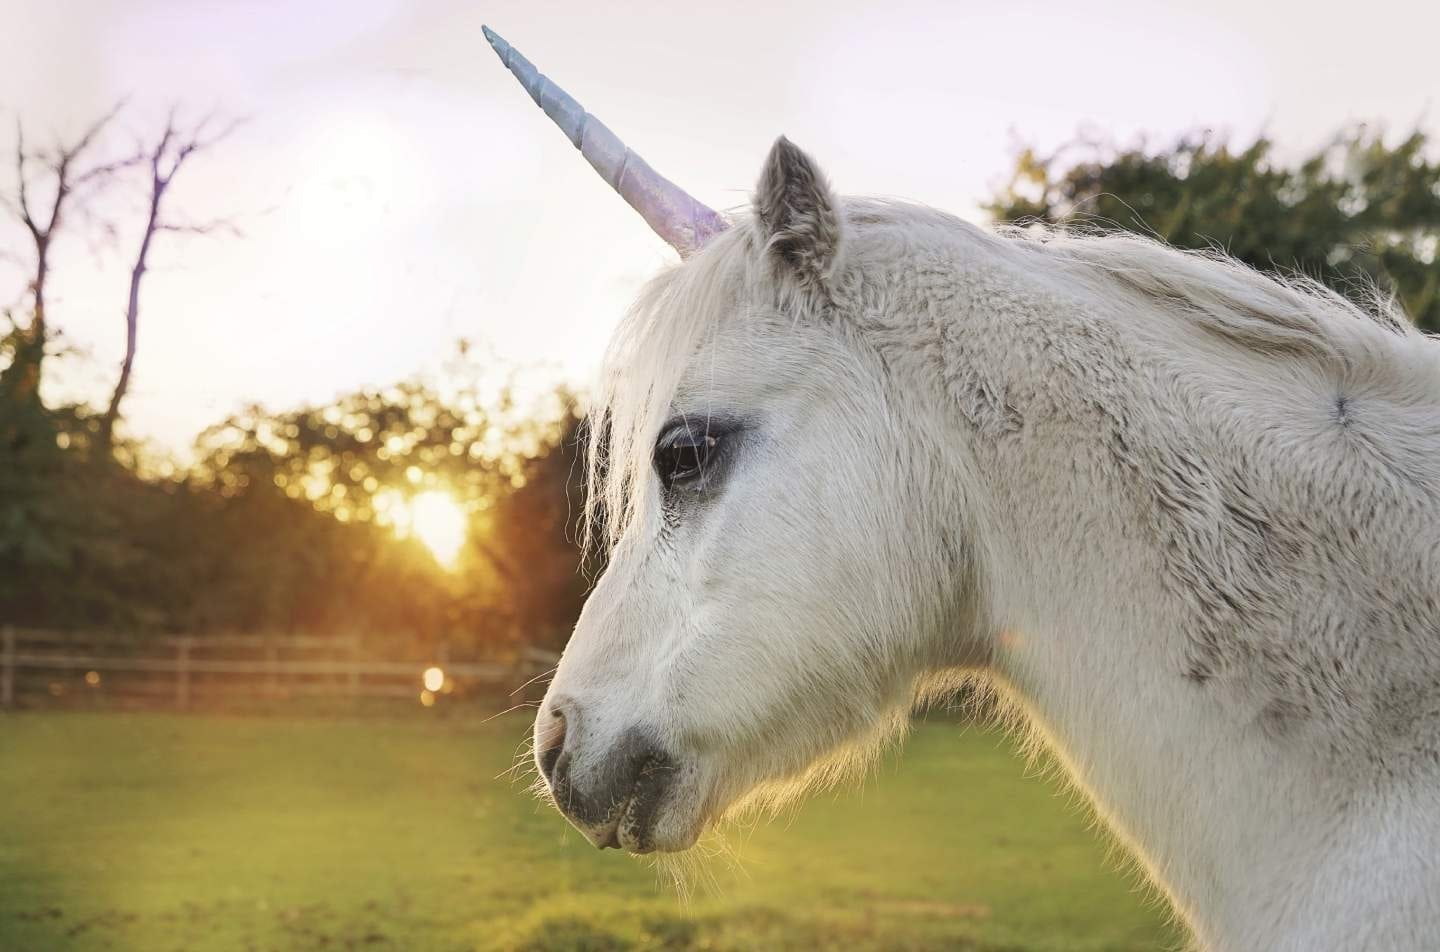 How To Build A Unicorn Email Program